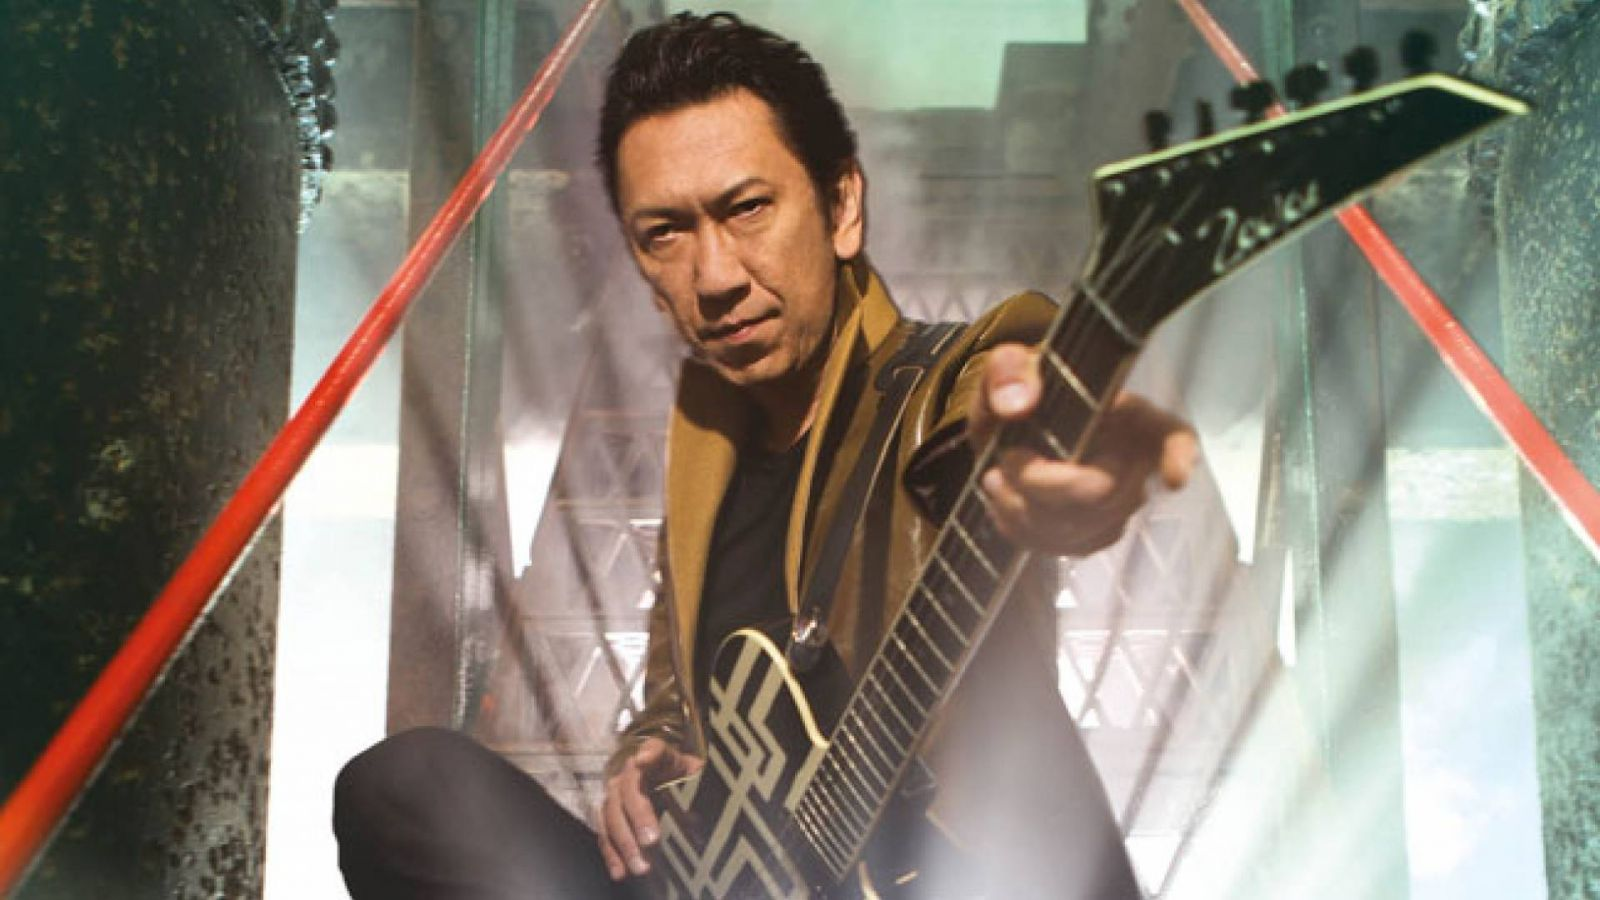 HOTEI – Strangers © DADA MUSIC Ltd. All rights reserved.